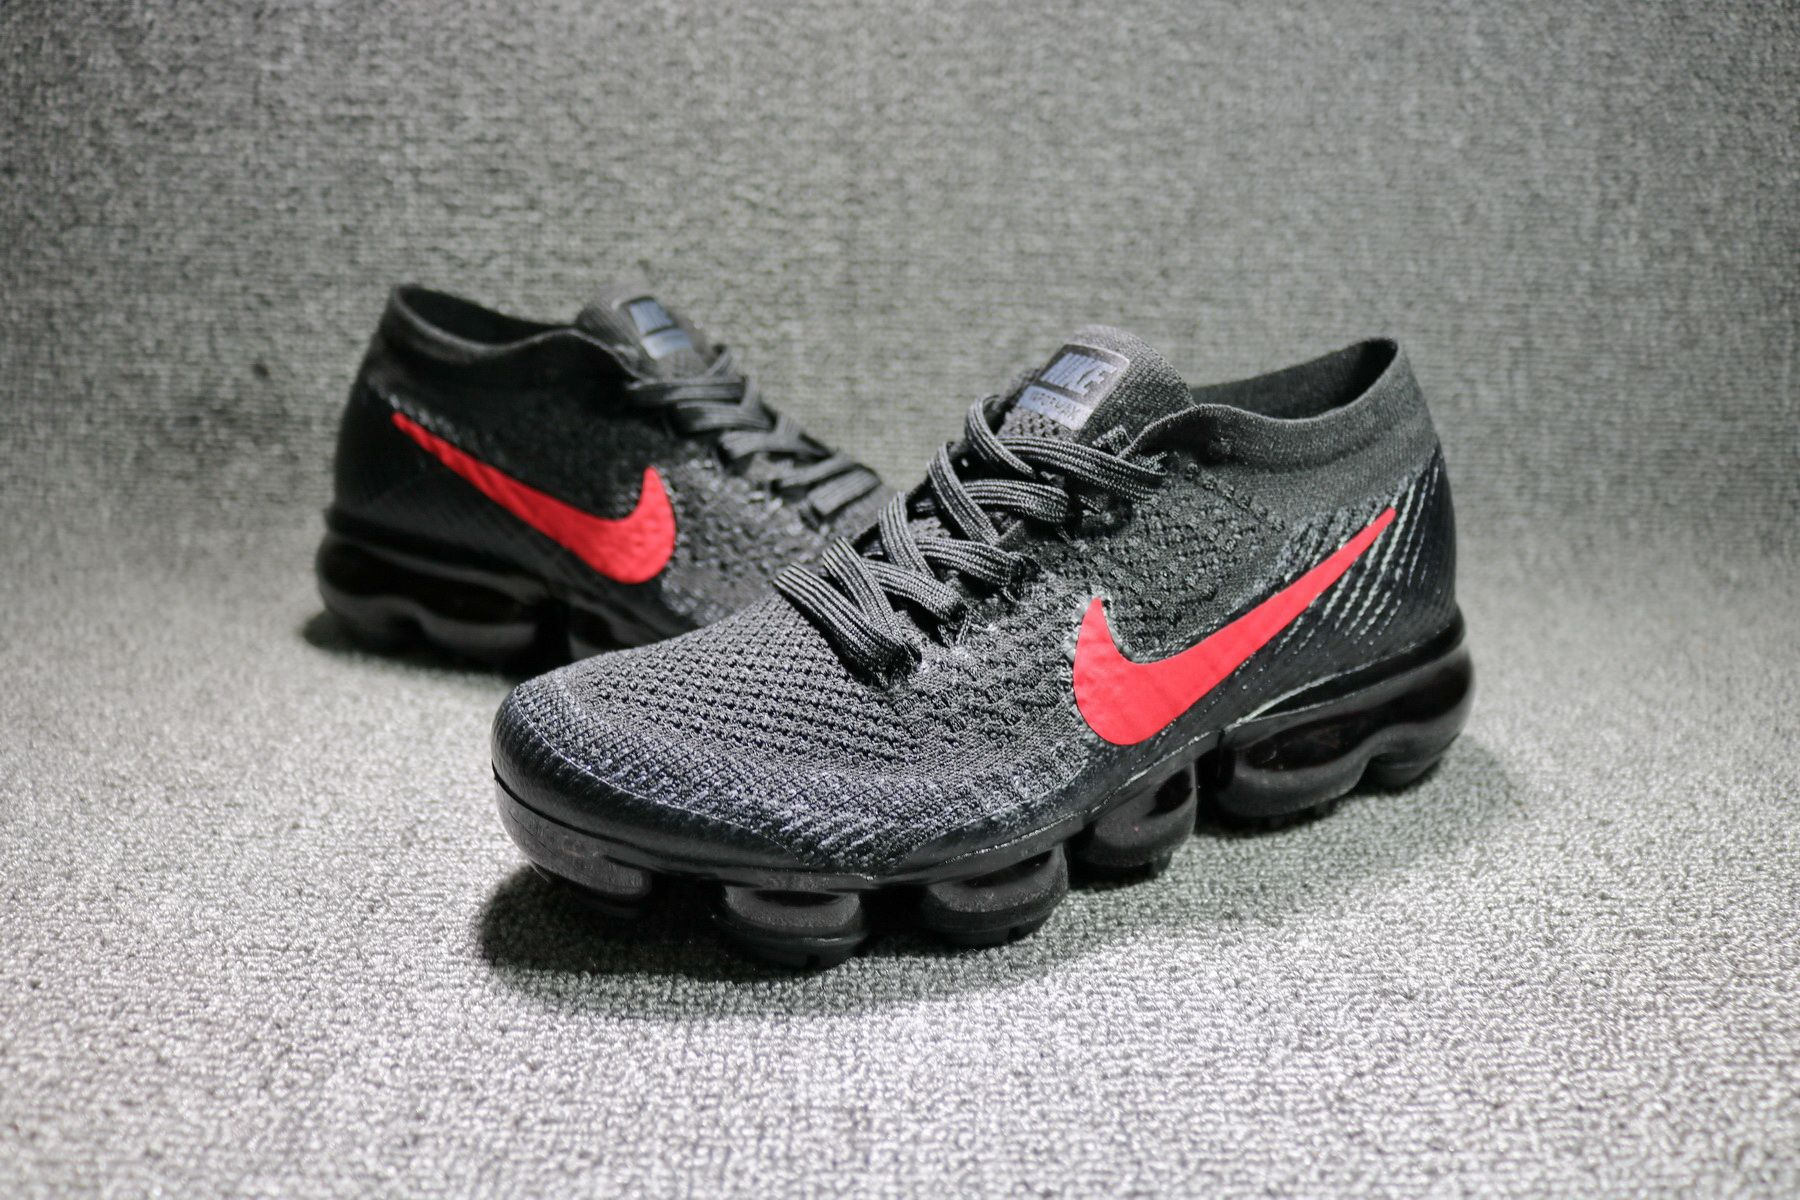 NIKE AIR VAPORMAX FLYKNIT RUNNING BLACK RED 849557 007